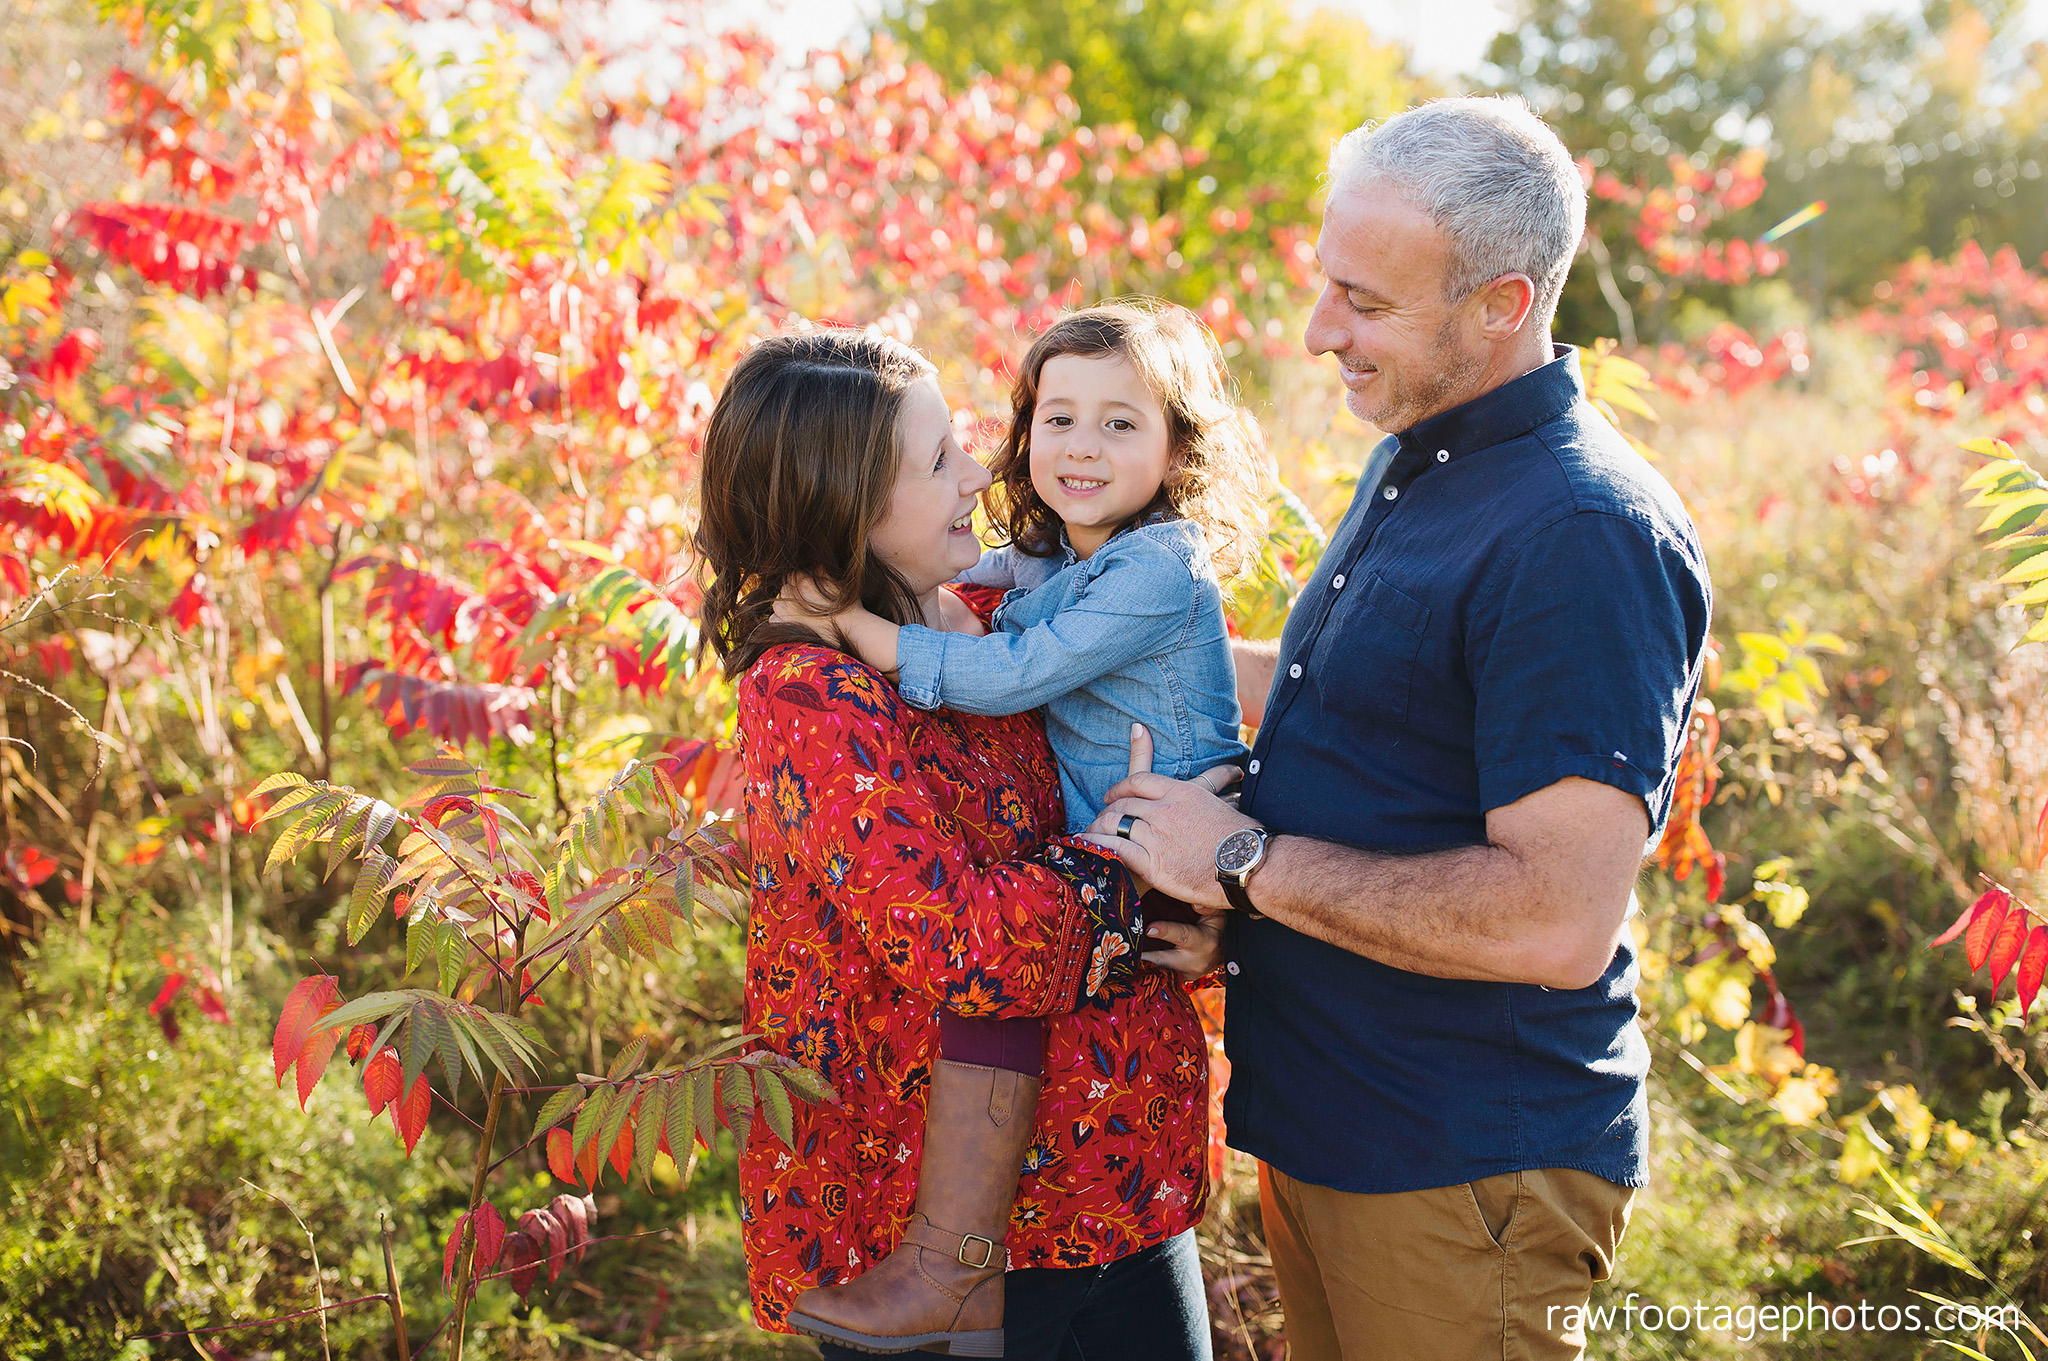 london_ontario_family_photographer-golden_hour_maternity_session-raw_footage_photography013.jpg